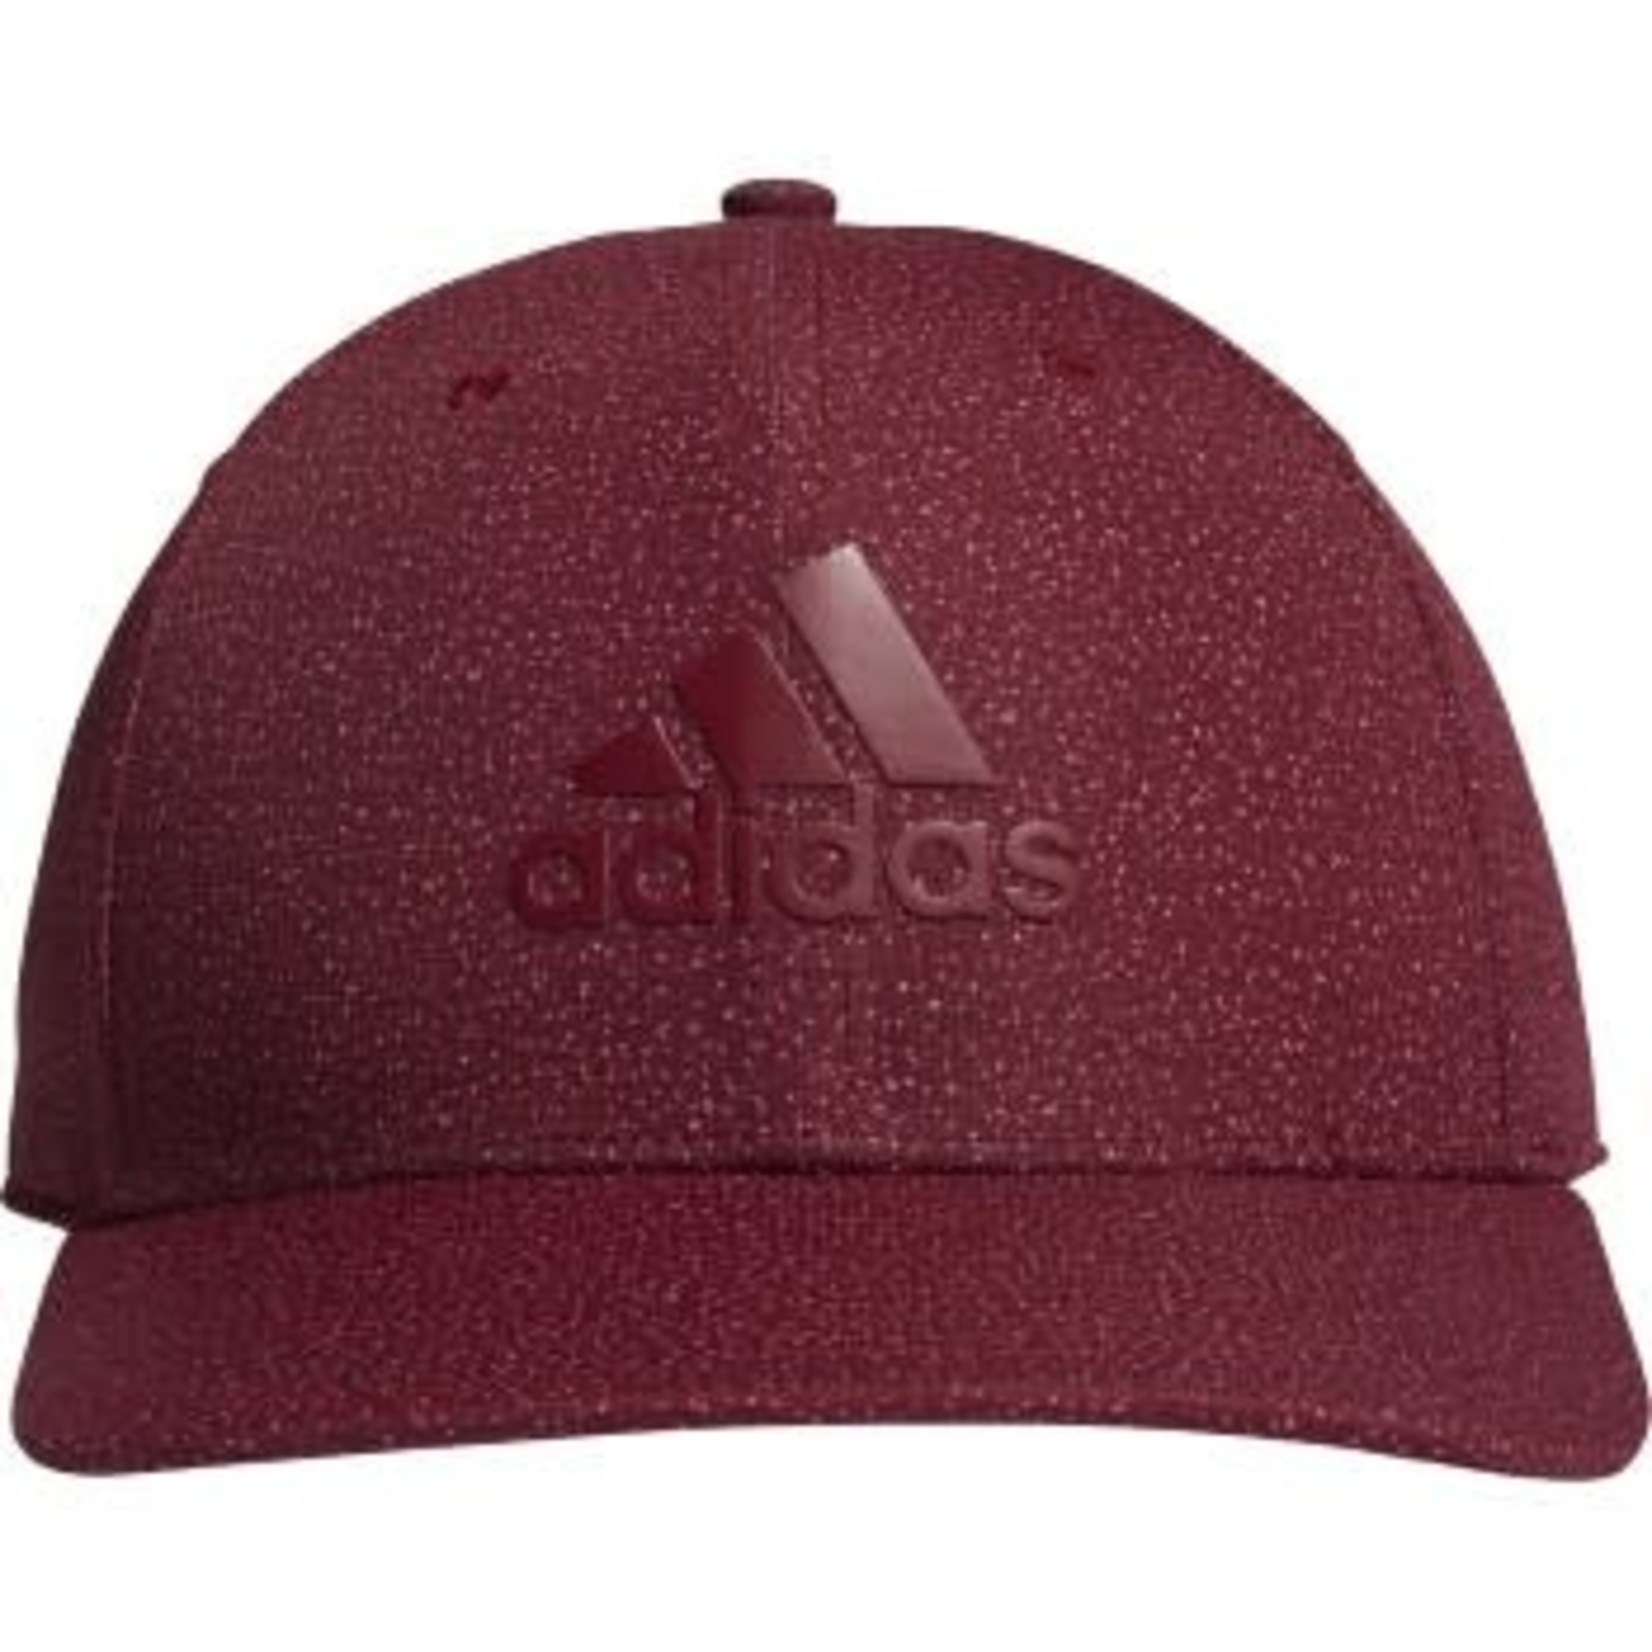 Adidas Digital Print Hat